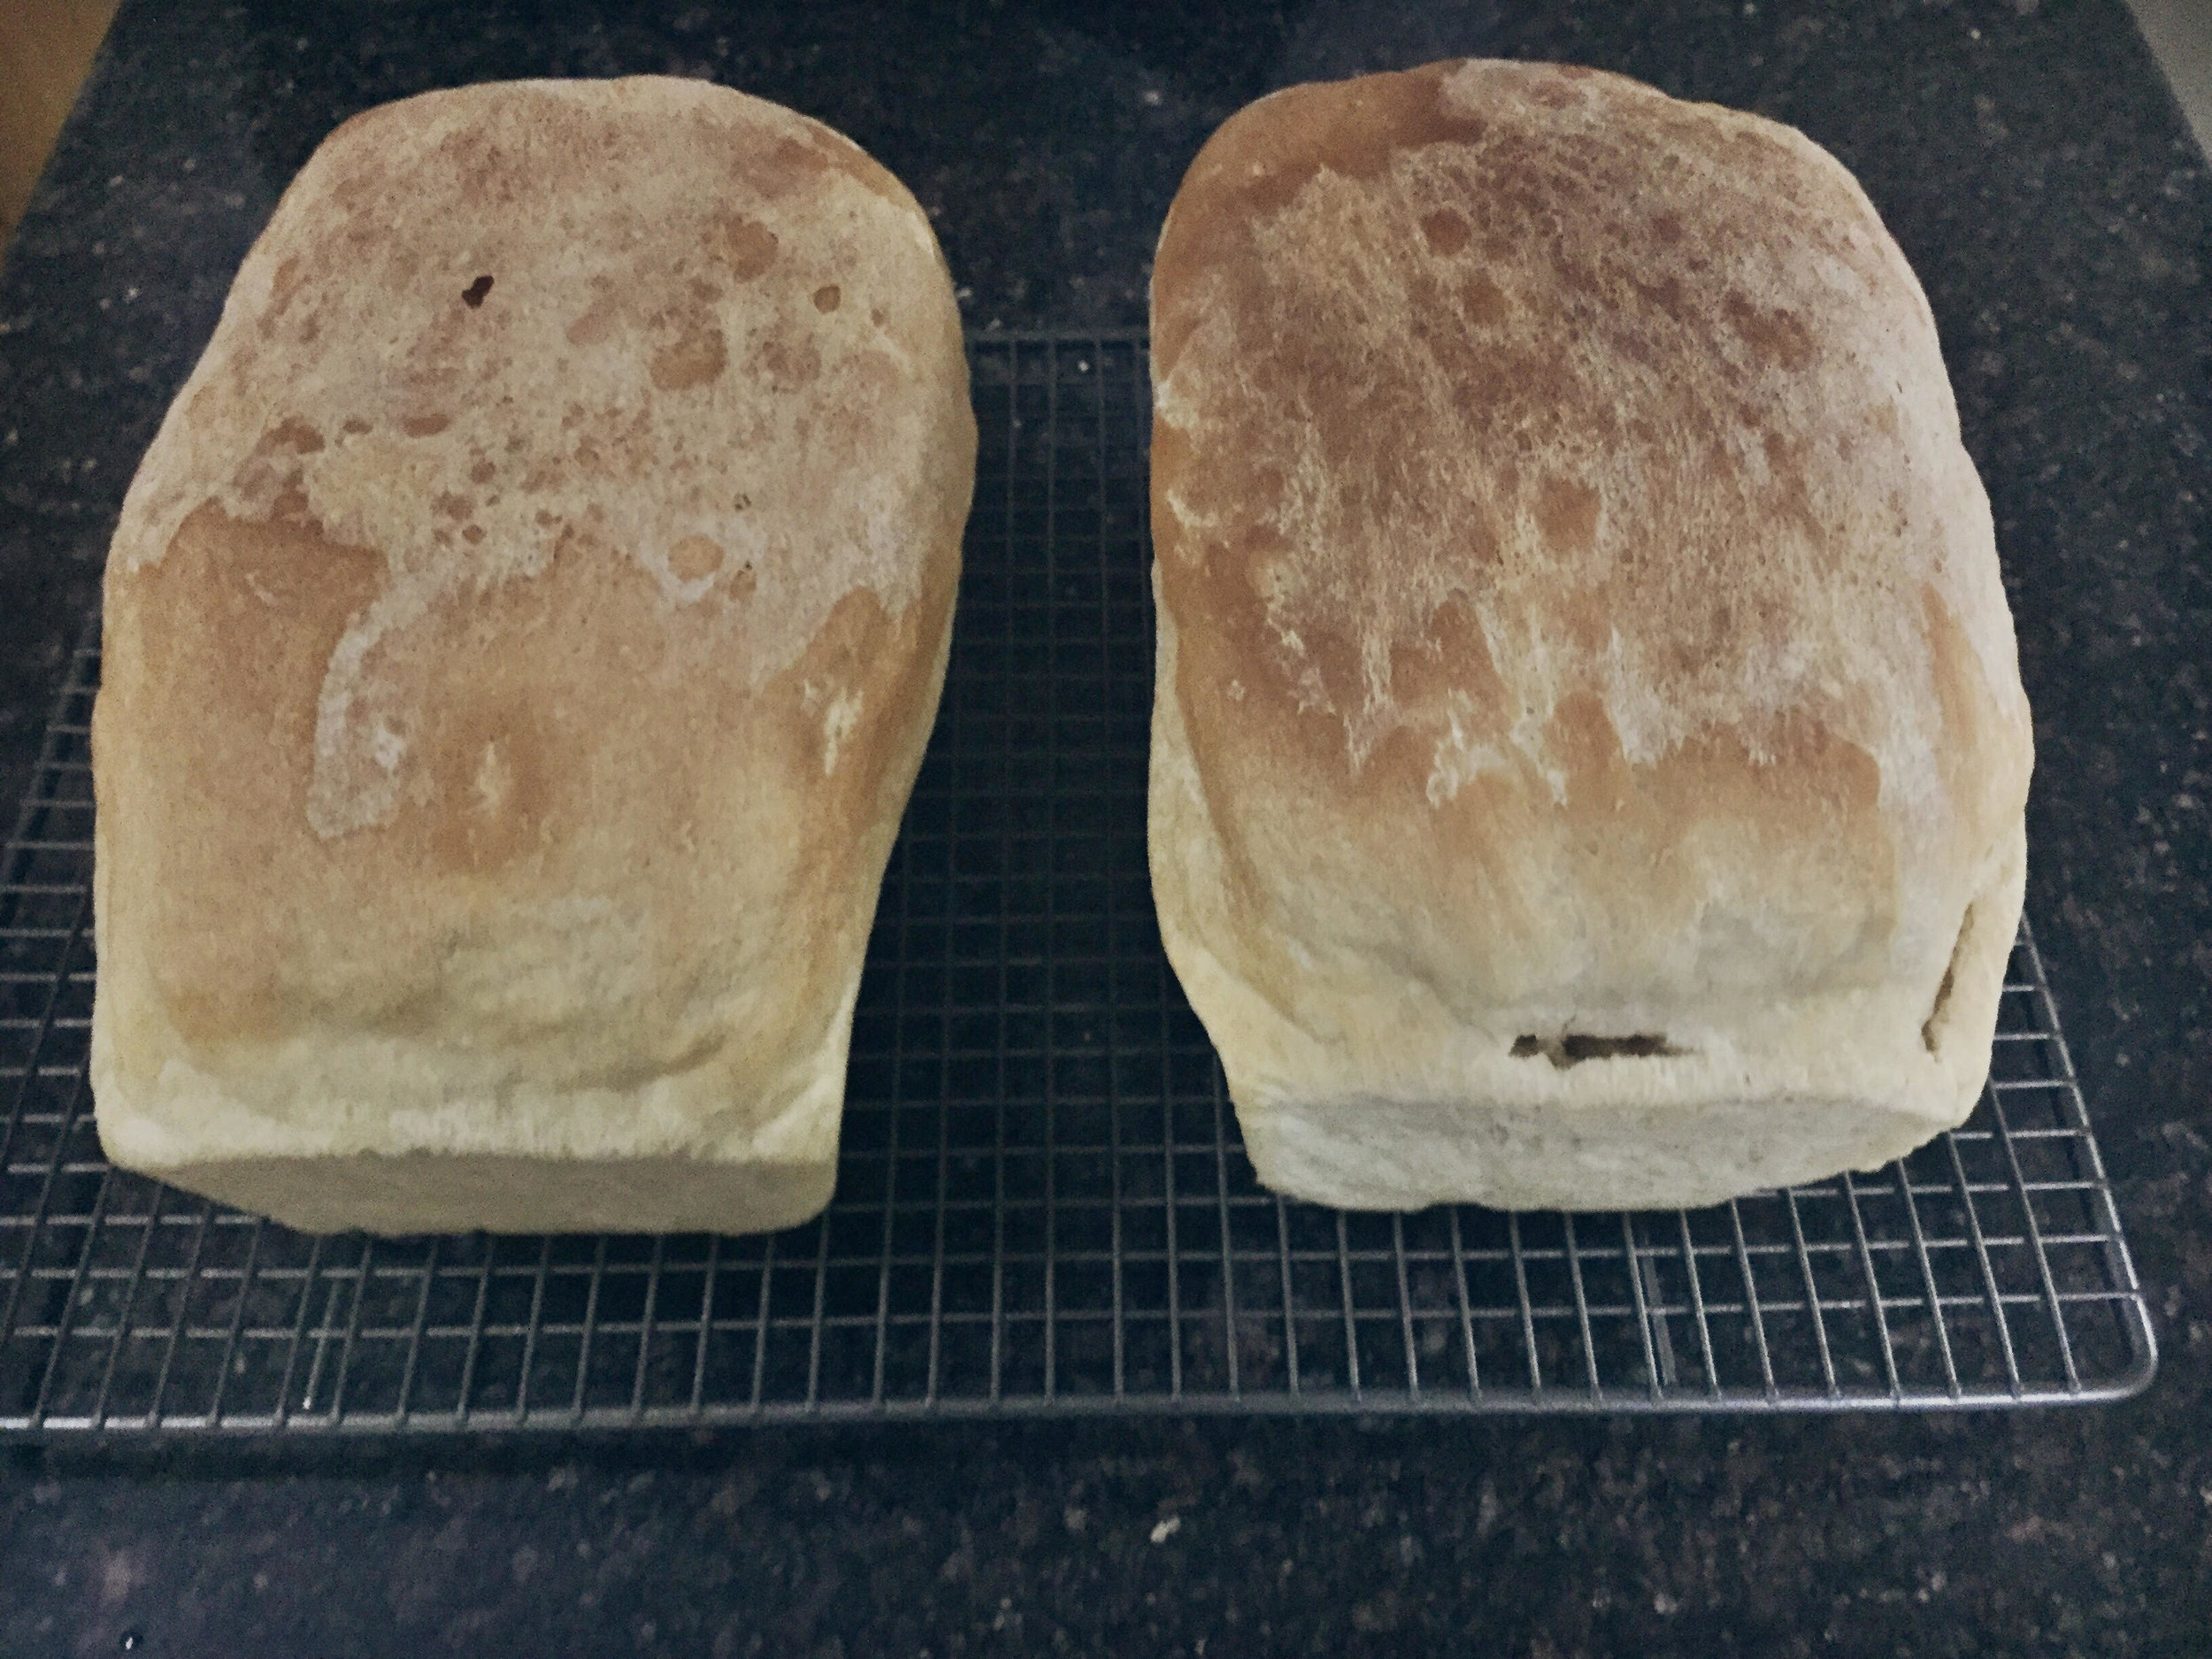 Finished bread